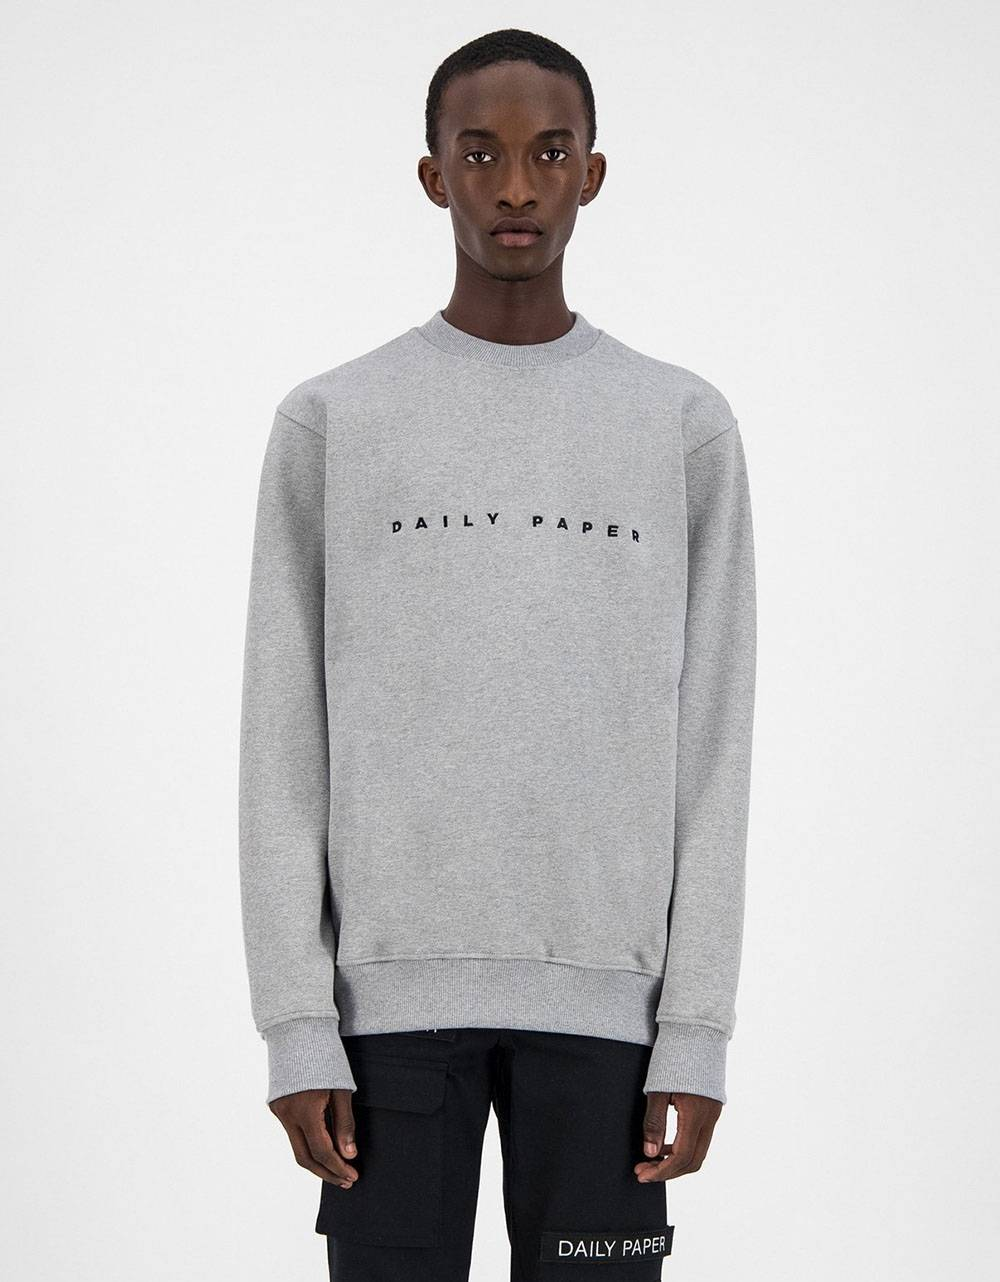 Daily Paper Alias crewneck sweater - Grey/Black DAILY PAPER Sweater 81,15 €